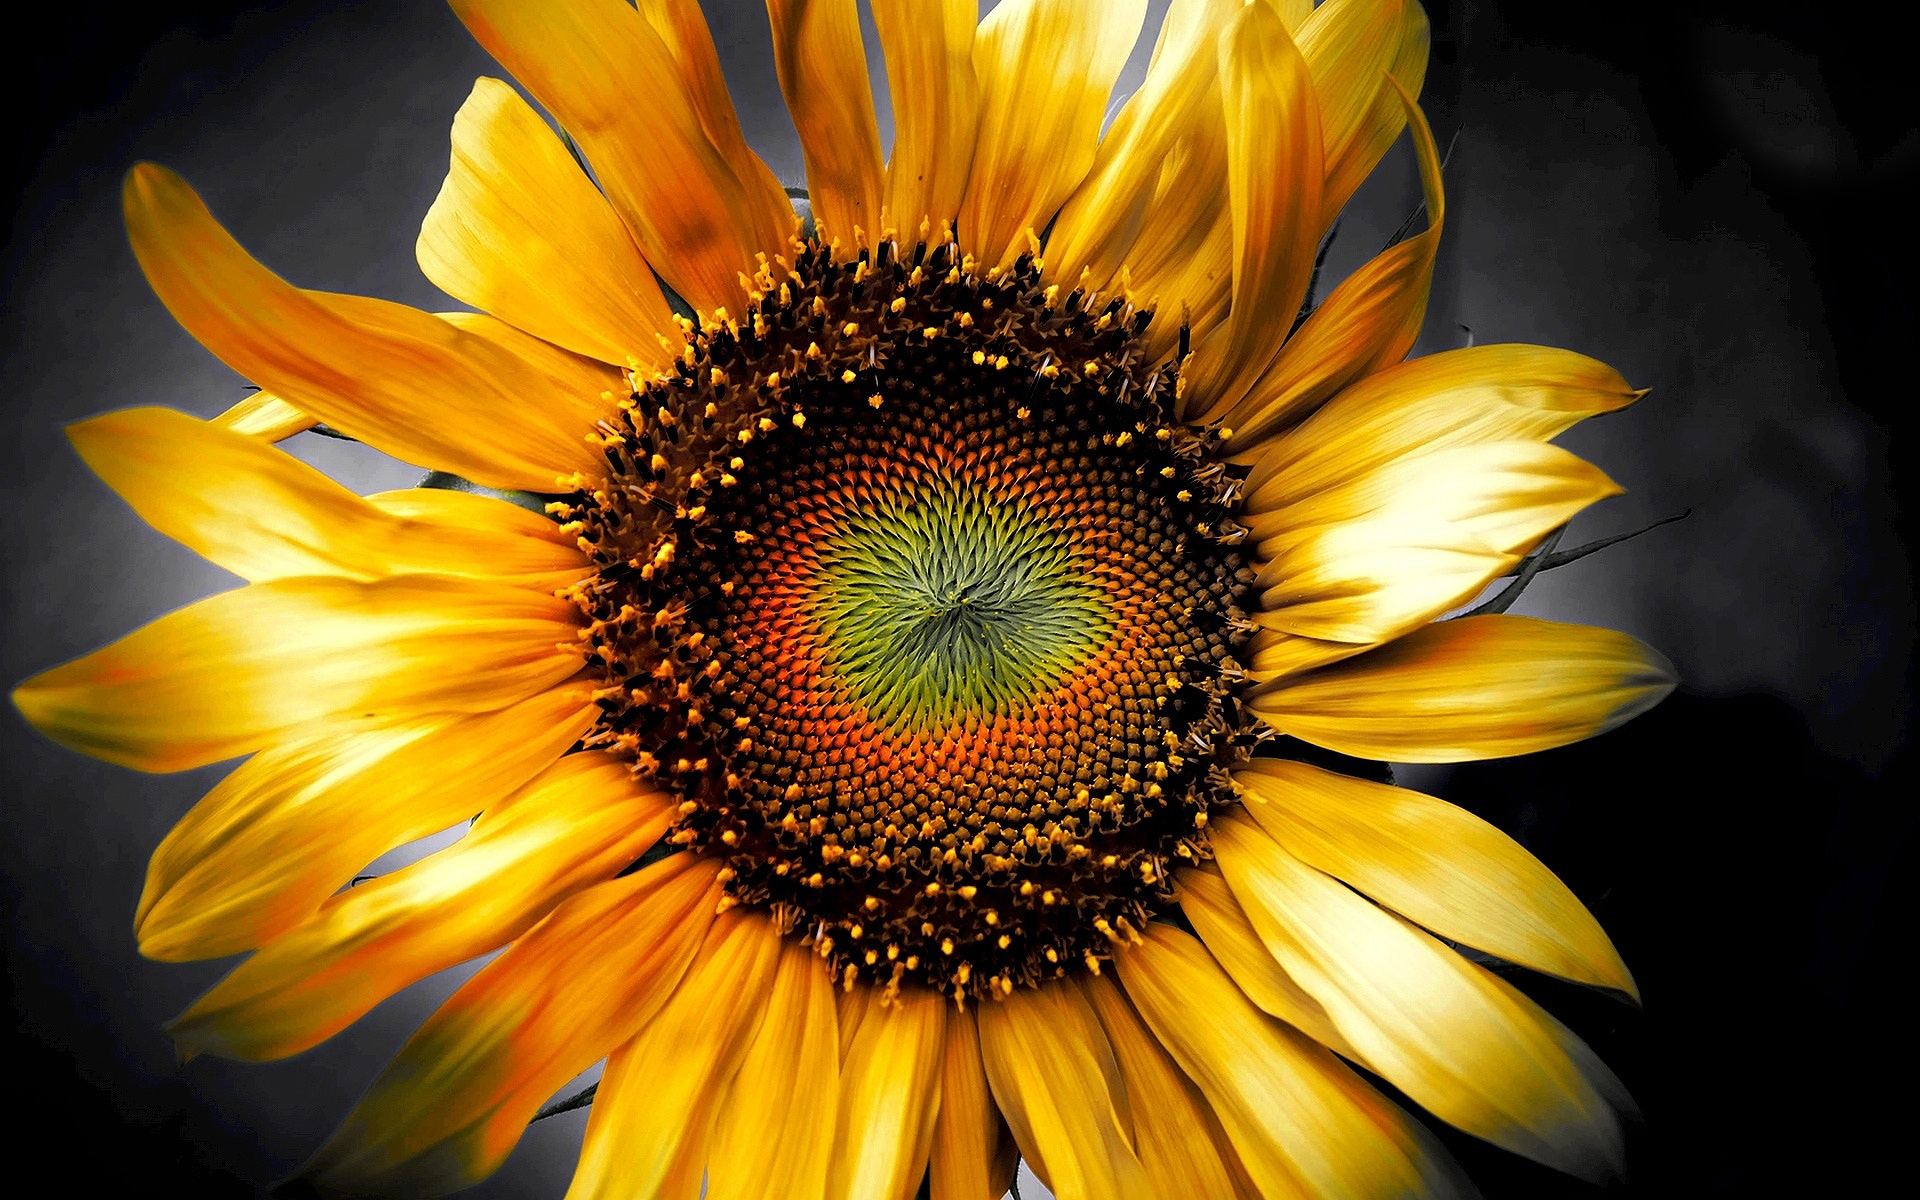 Sunflower-art-3d